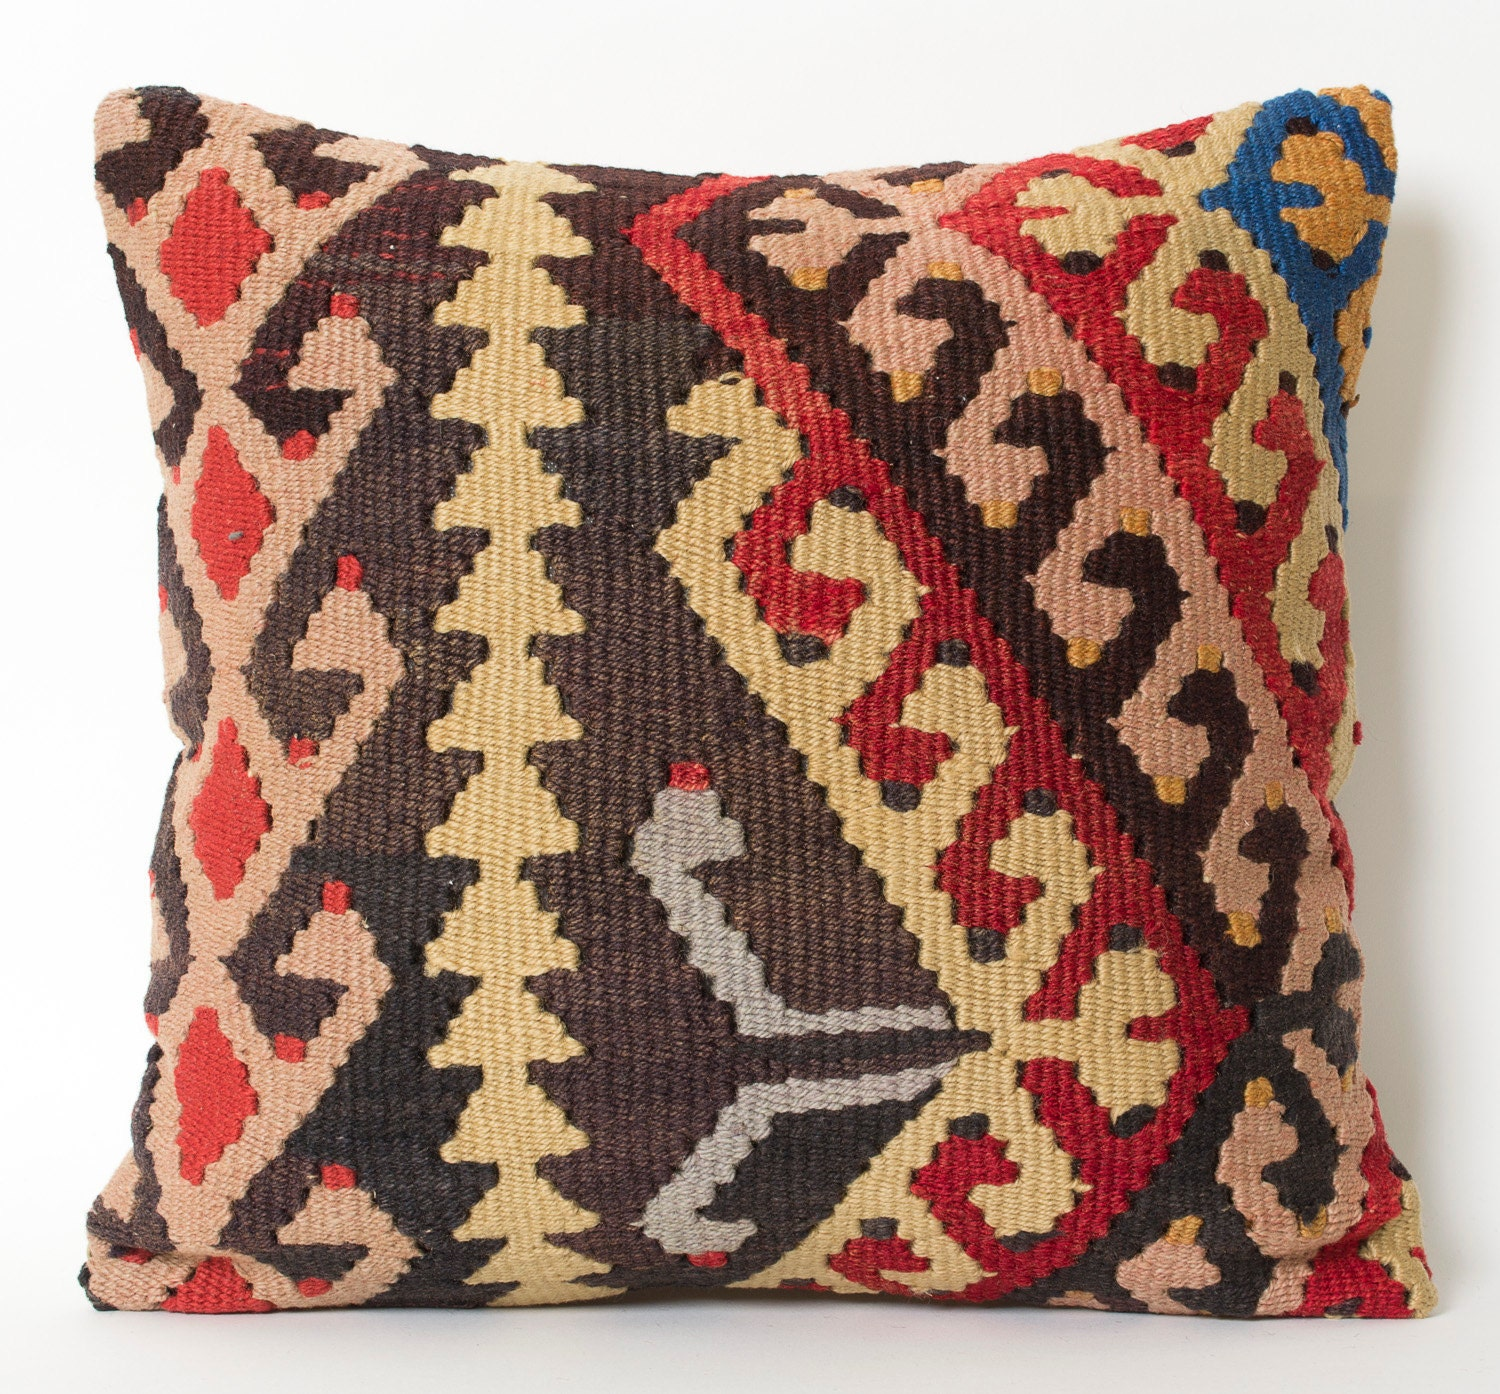 boho pillow decorative pillow bohemian pillow throw pillow